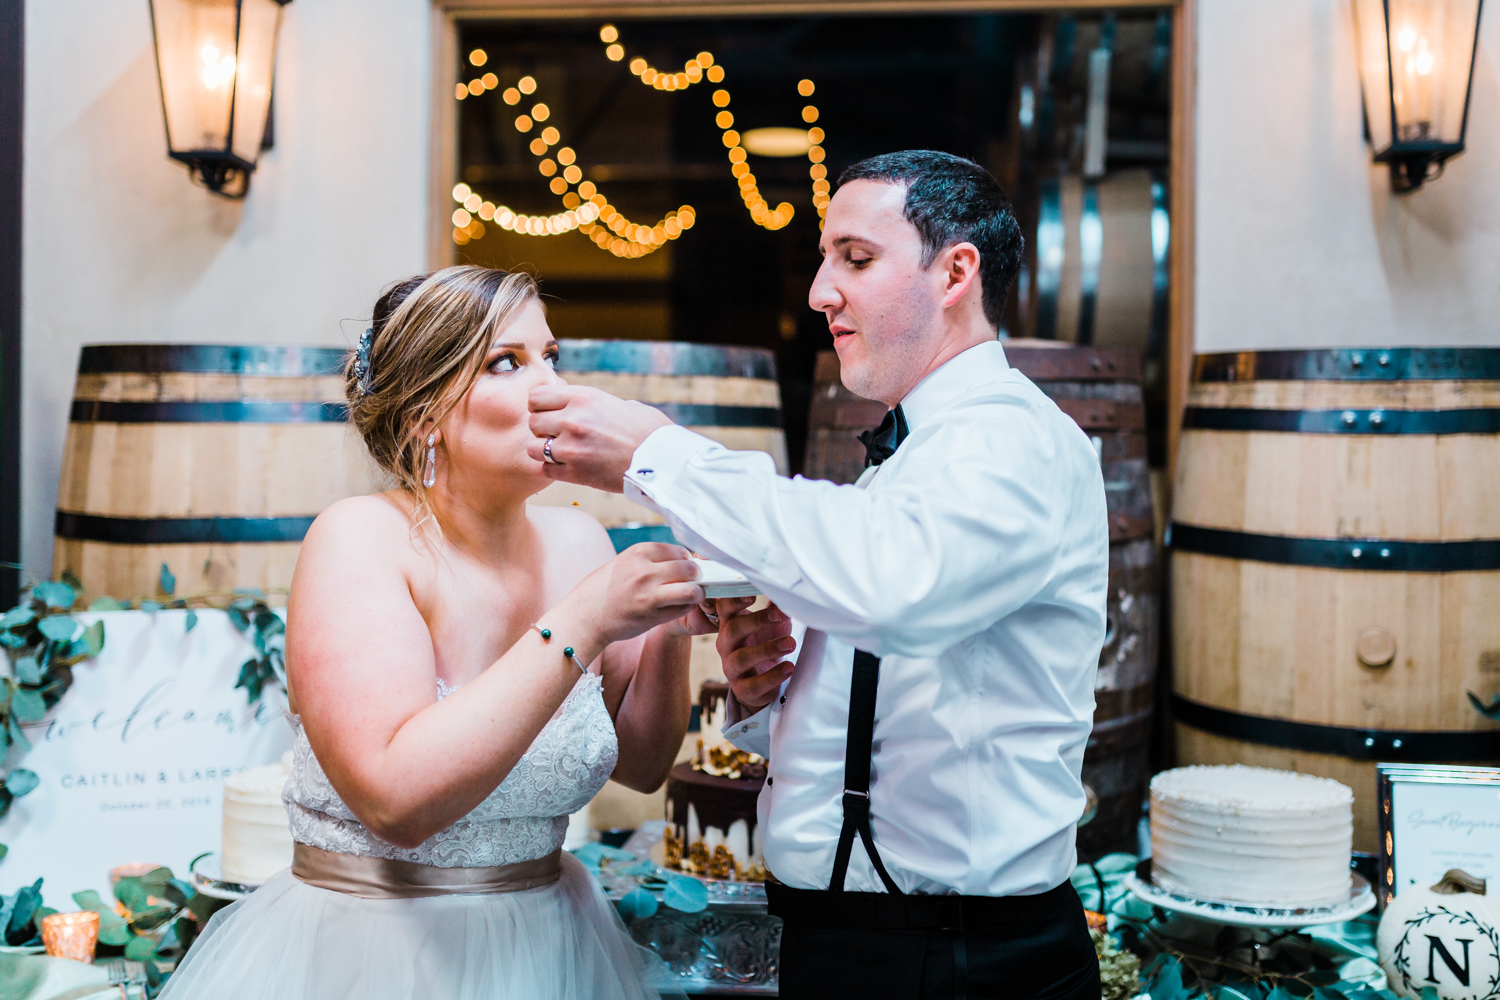 groom feeds bride wedding cake - industrial and modern wedding venue McClintock Distilling in Frederick MD